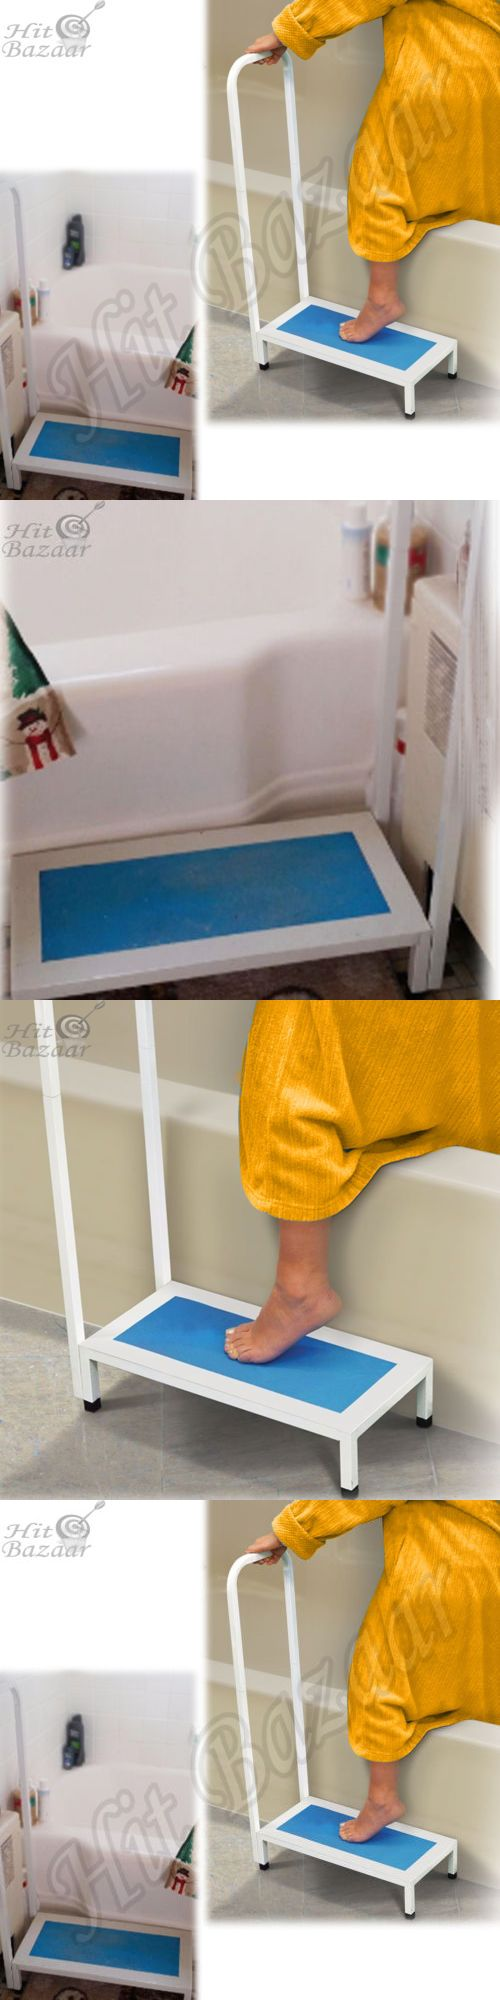 Steps and Stairs: Bath Step Shower Bathtub Non Slip Grip Handle Support Bathroom Elderly Safety BUY IT NOW ONLY: $51.32